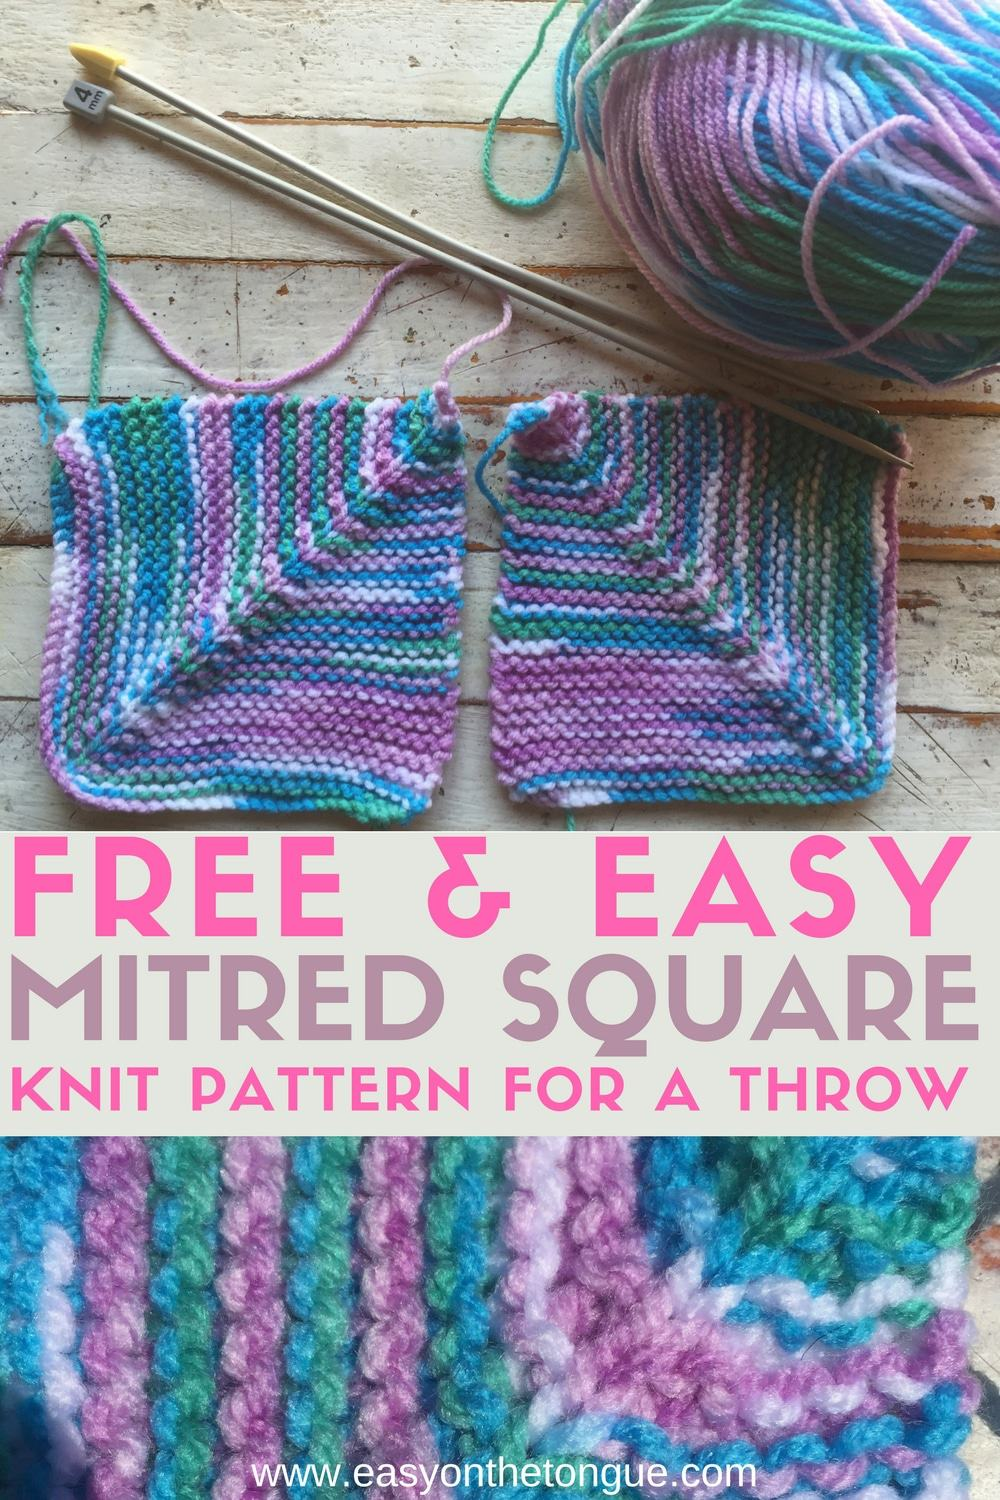 edf4b5bc4793 Free Easy Knit Square Pattern to Make a Quick Throw